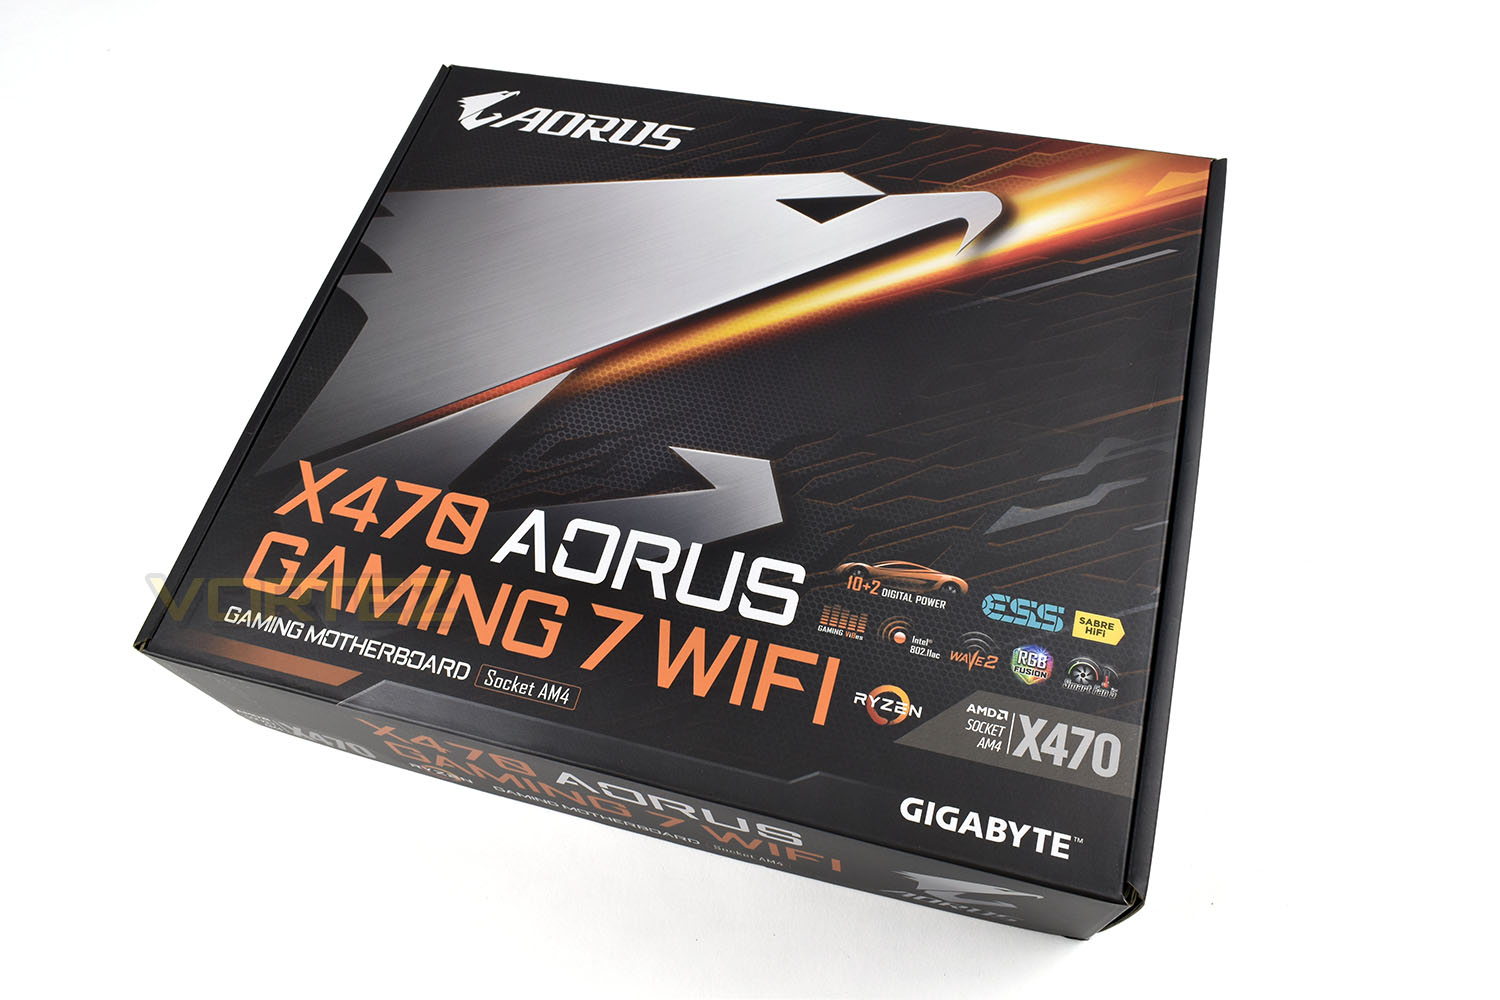 GIGABYTE AORUS X470 GAMING 7 WIFI Review - Packaging & First